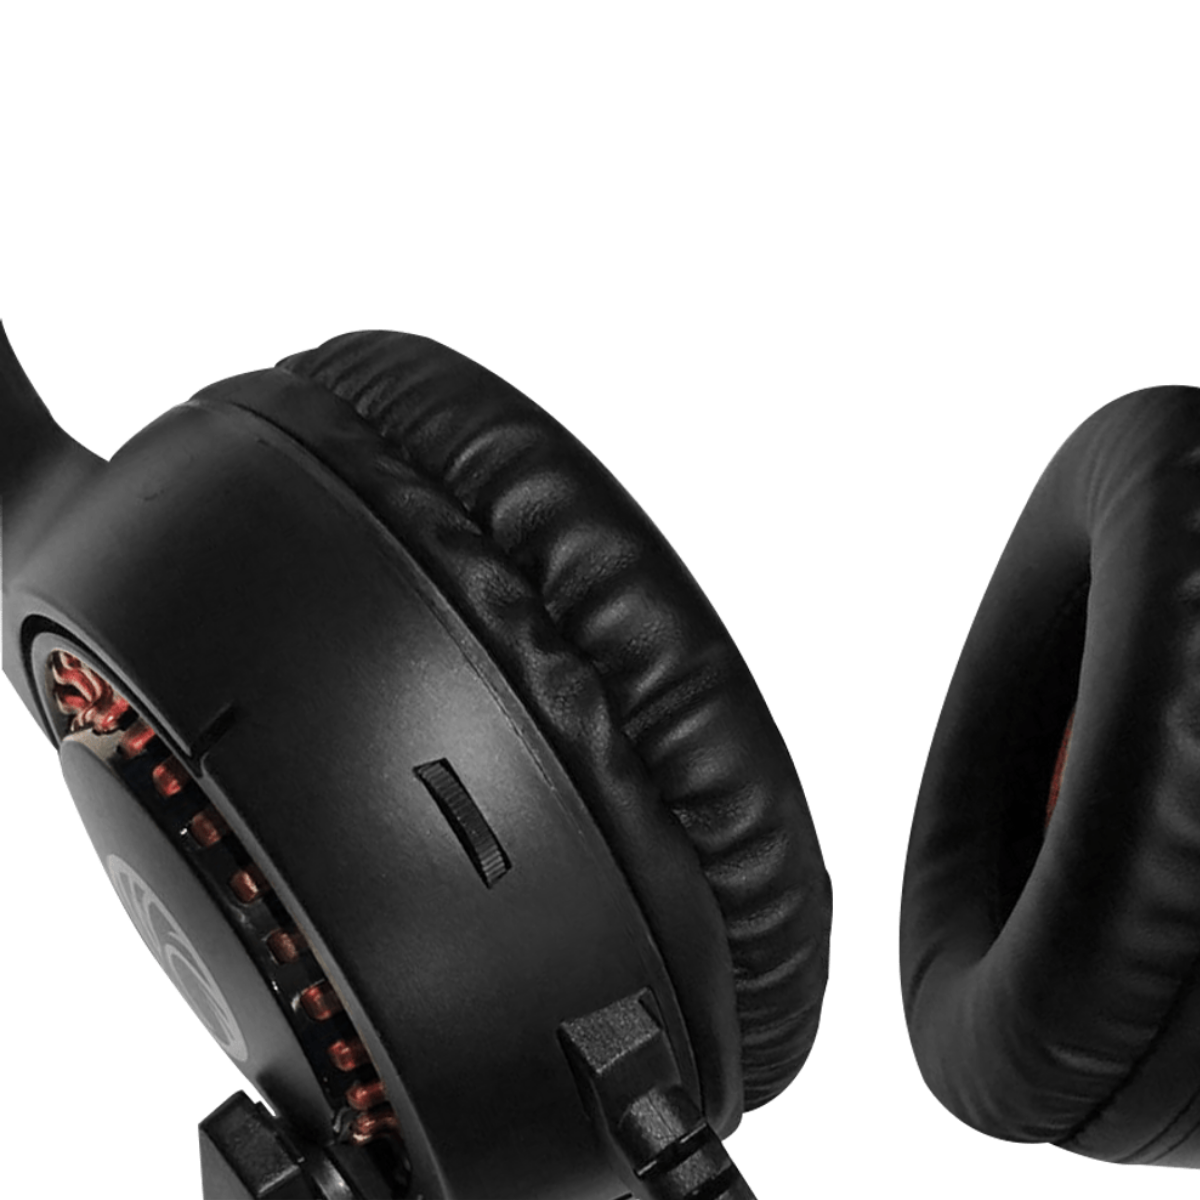 HEADPHONE GAMER BRAZILPC K2 C/ MICROFONE USB/P2